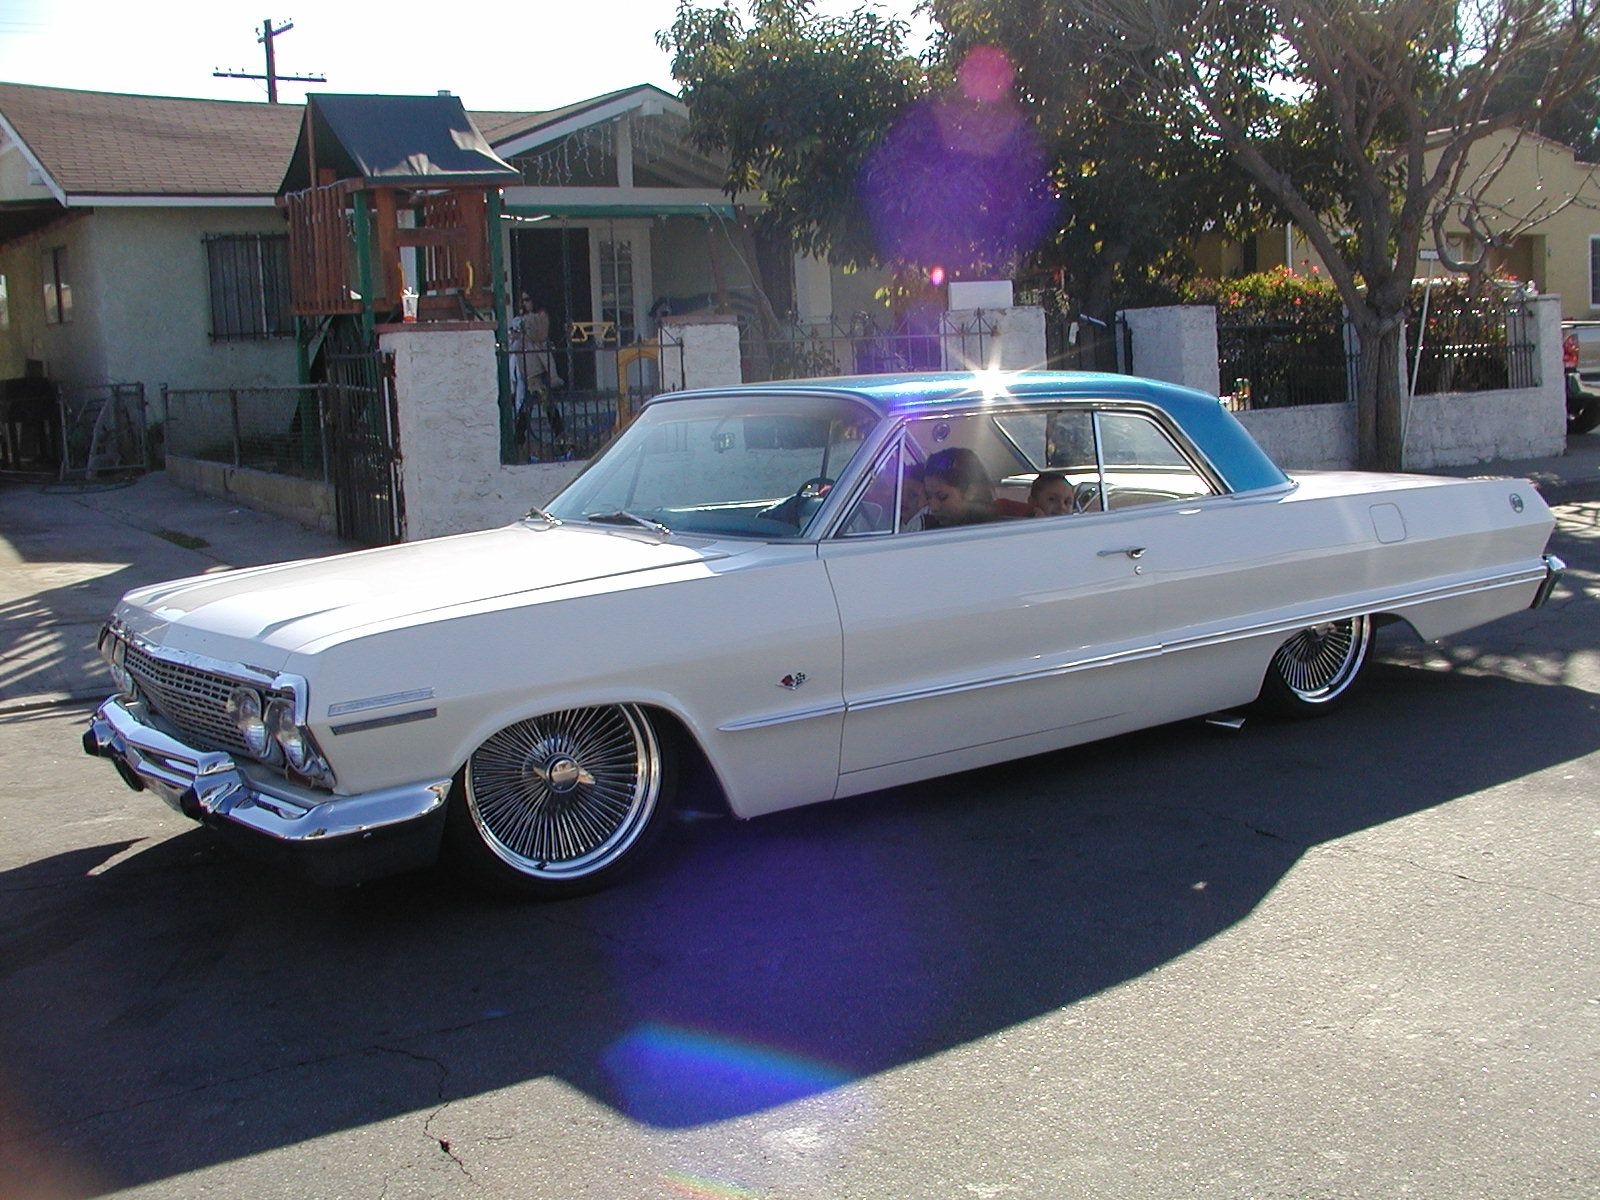 1963 impala lowrider on air bags (With images) Classic